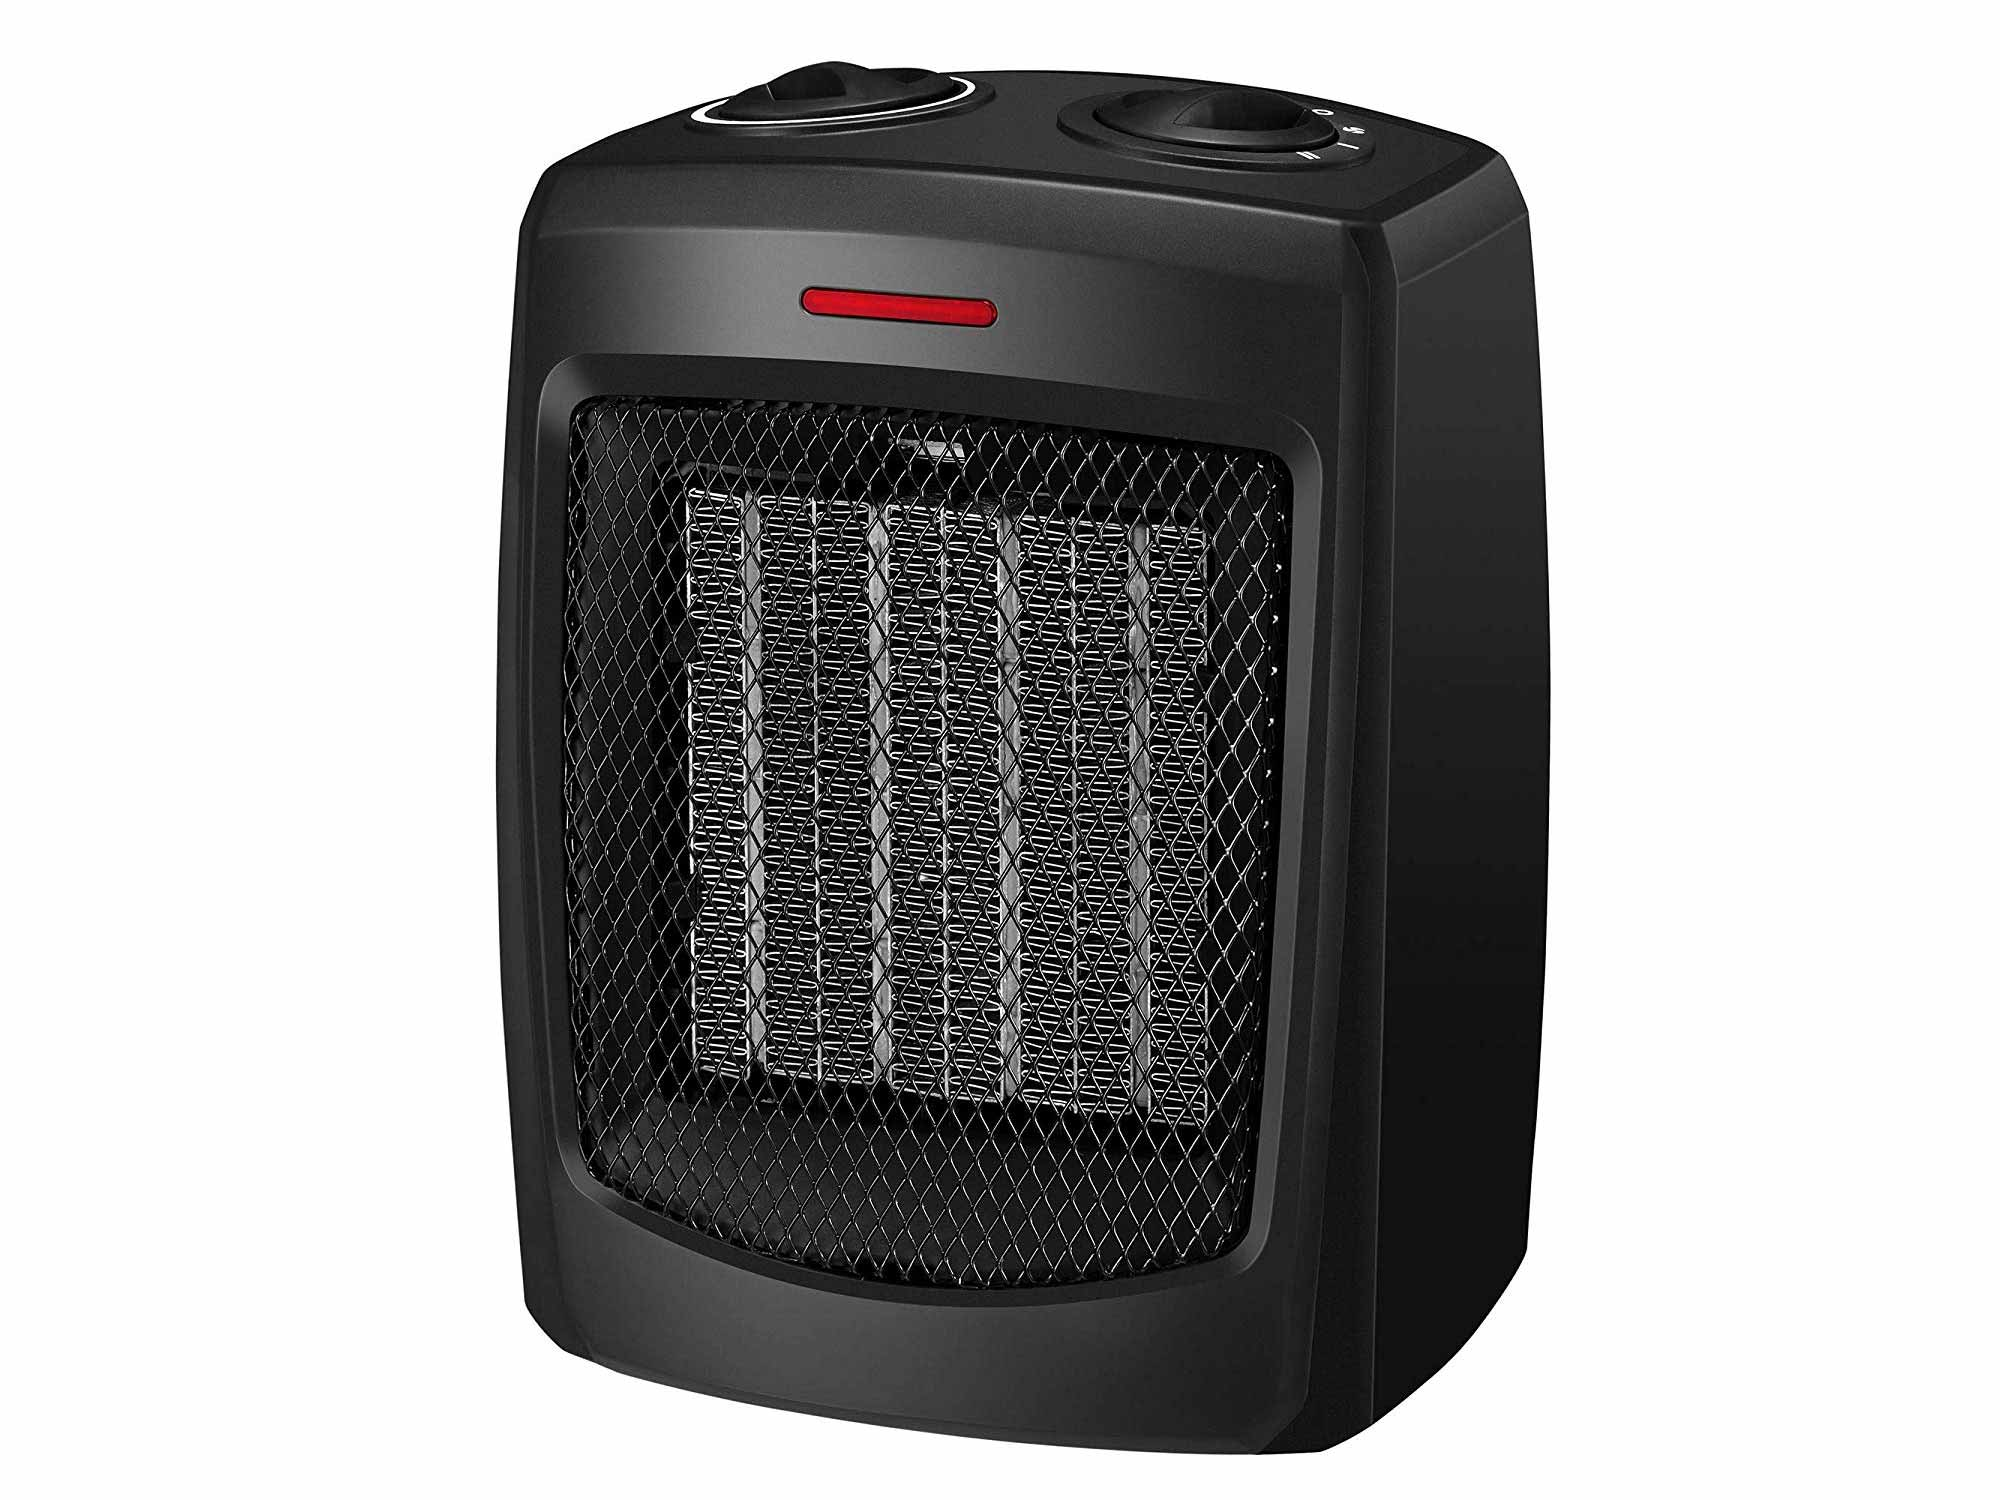 Andily space heater